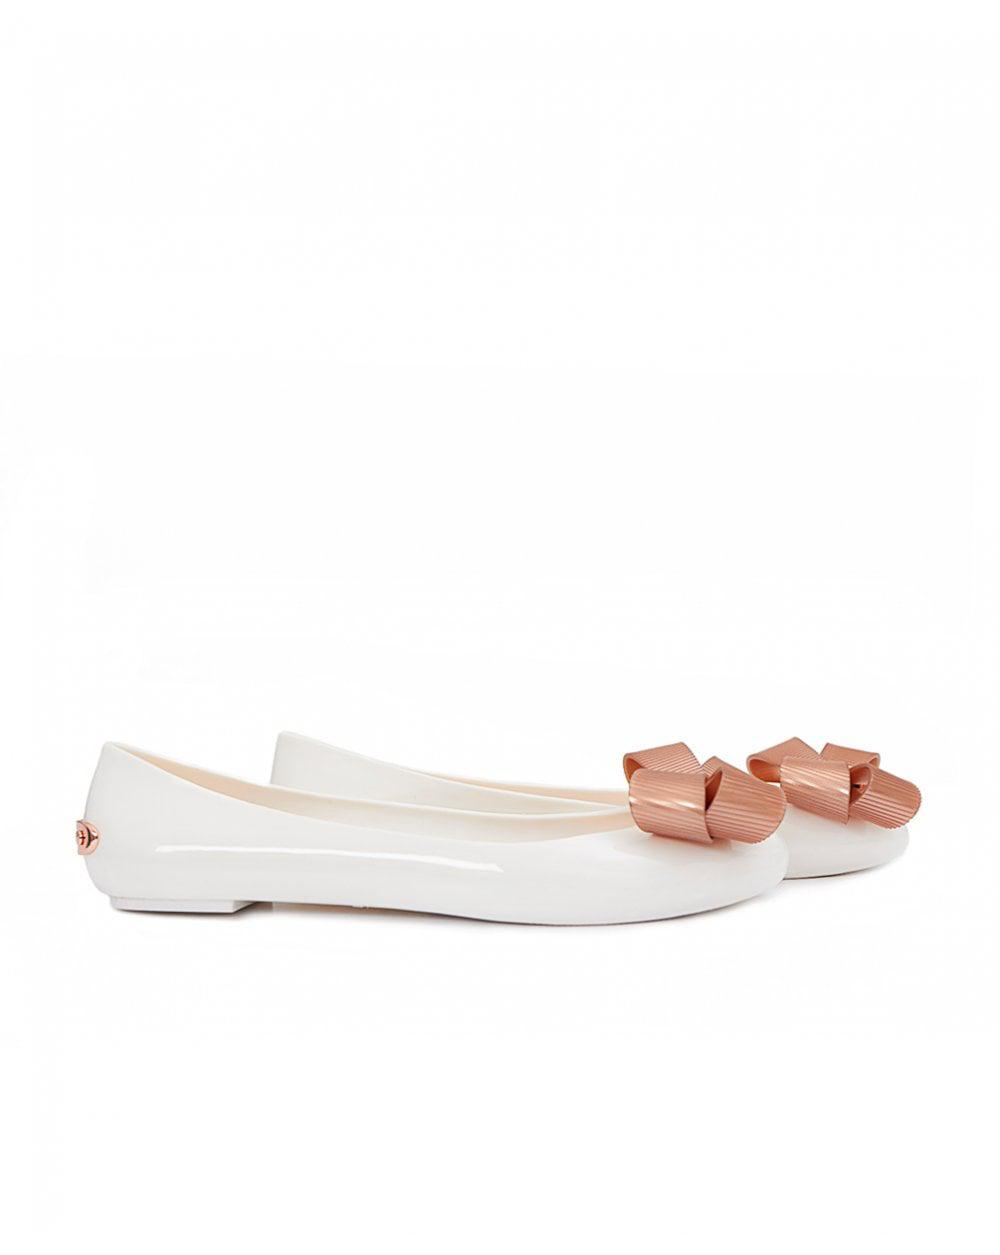 3318d671b Ted Baker Bow Front Jelly Pumps in White - Lyst